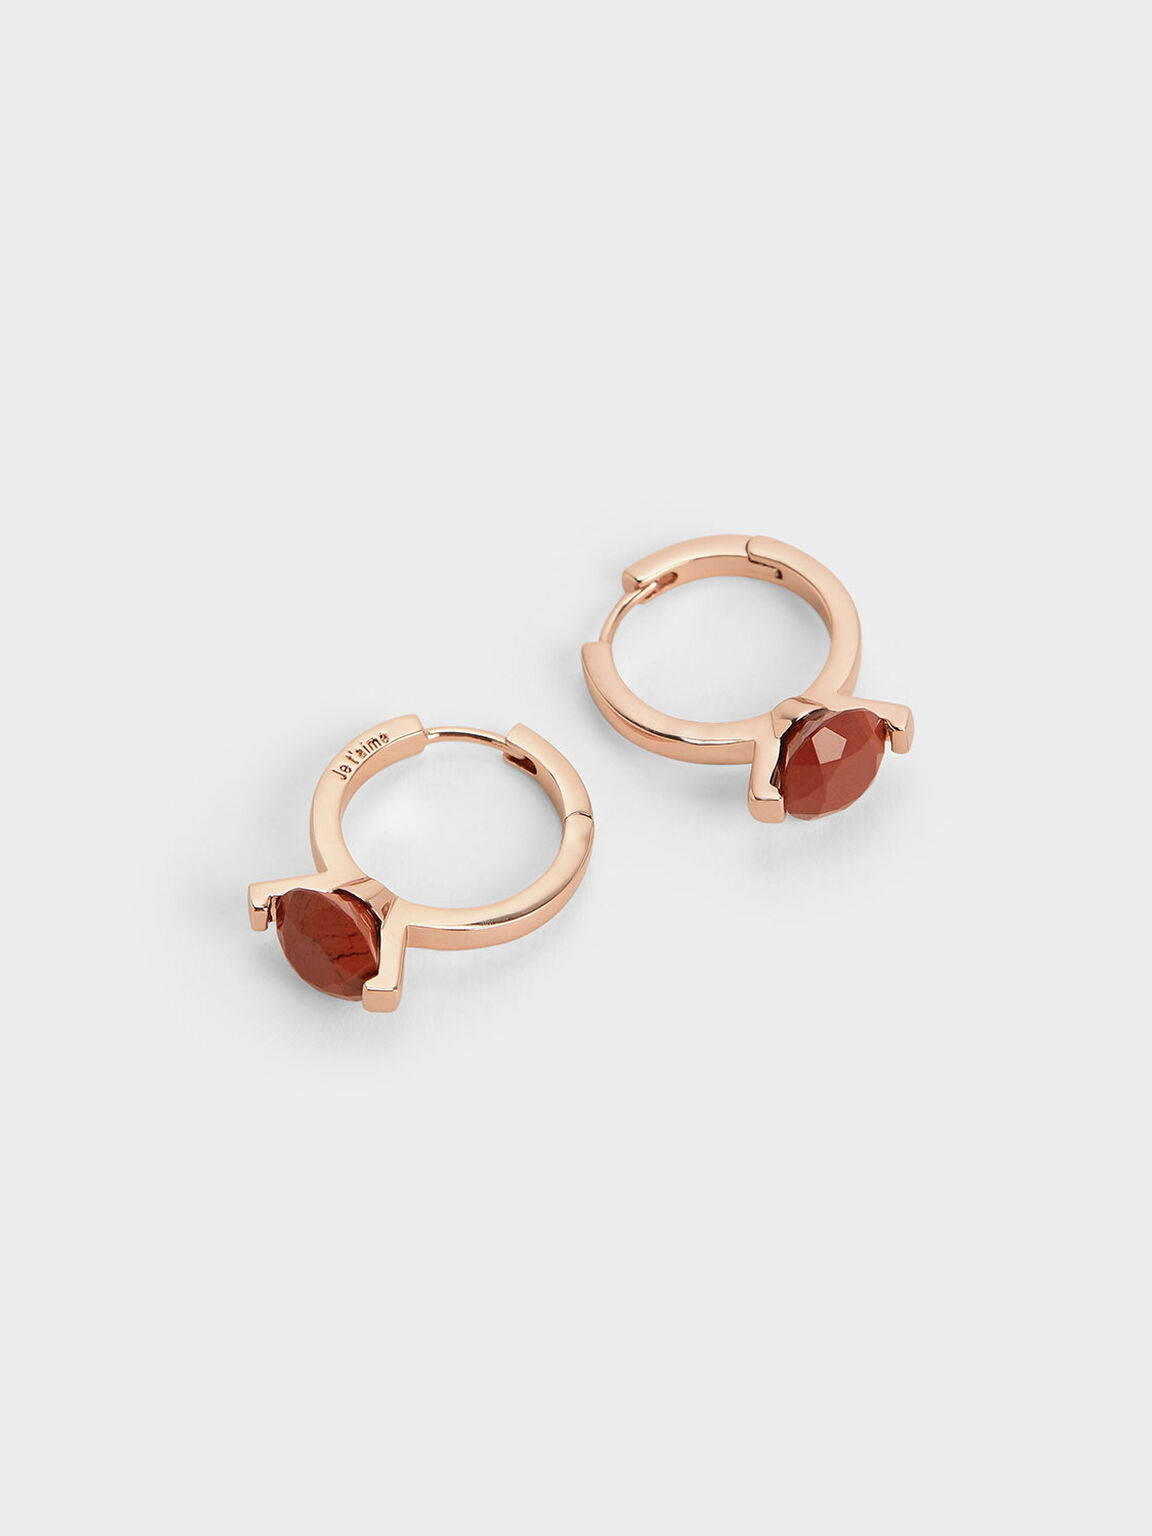 Red Jasper Stone Huggie Hoop Earrings, Rose Gold, hi-res